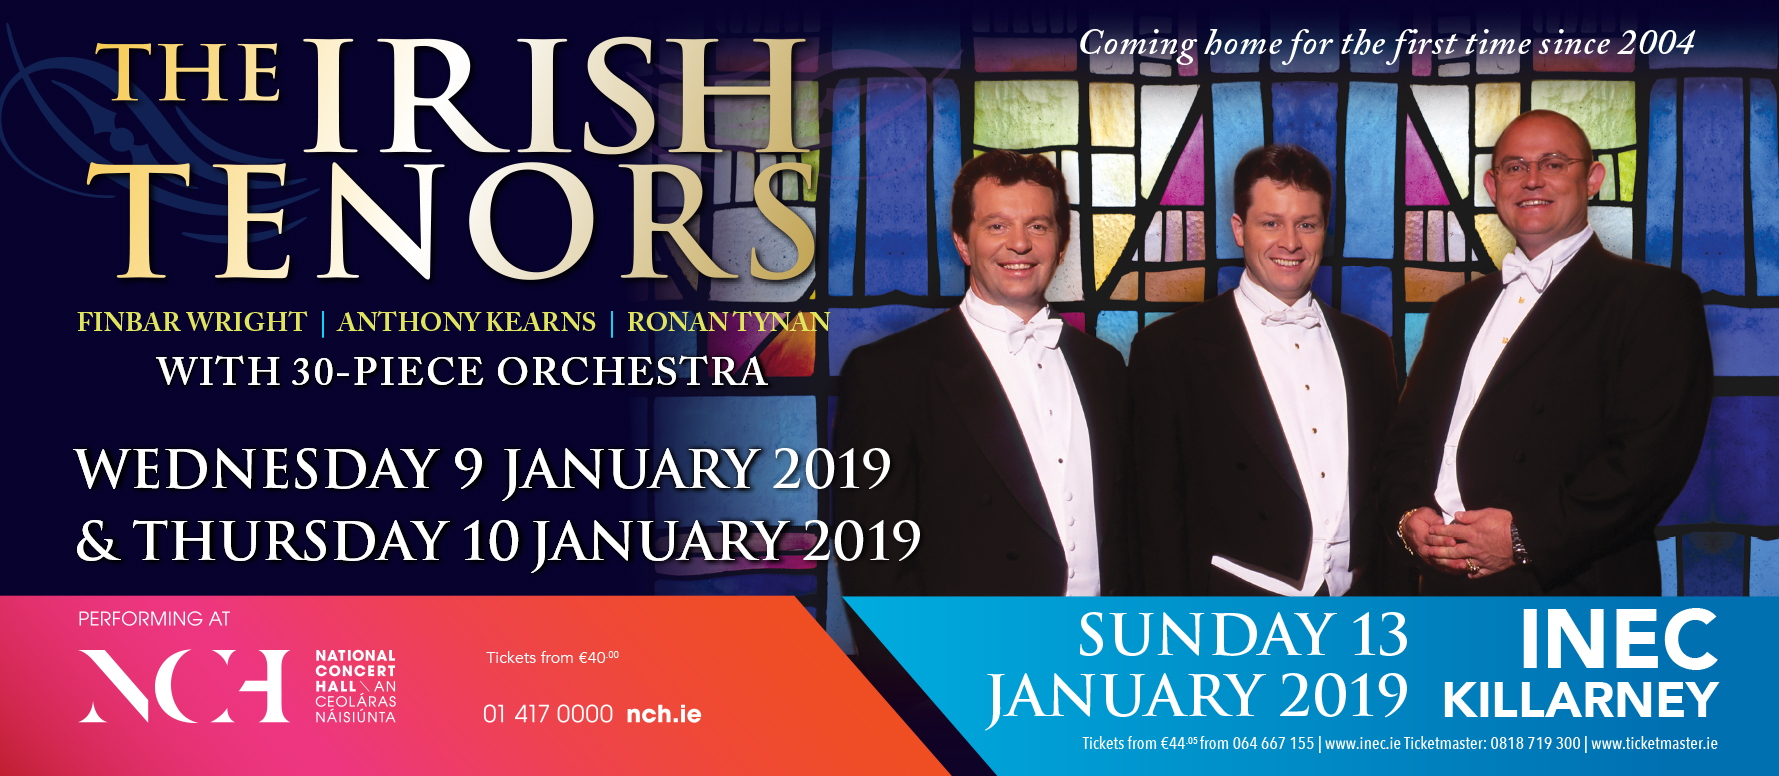 The Irish Tenors announce 3 concerts for January 2019